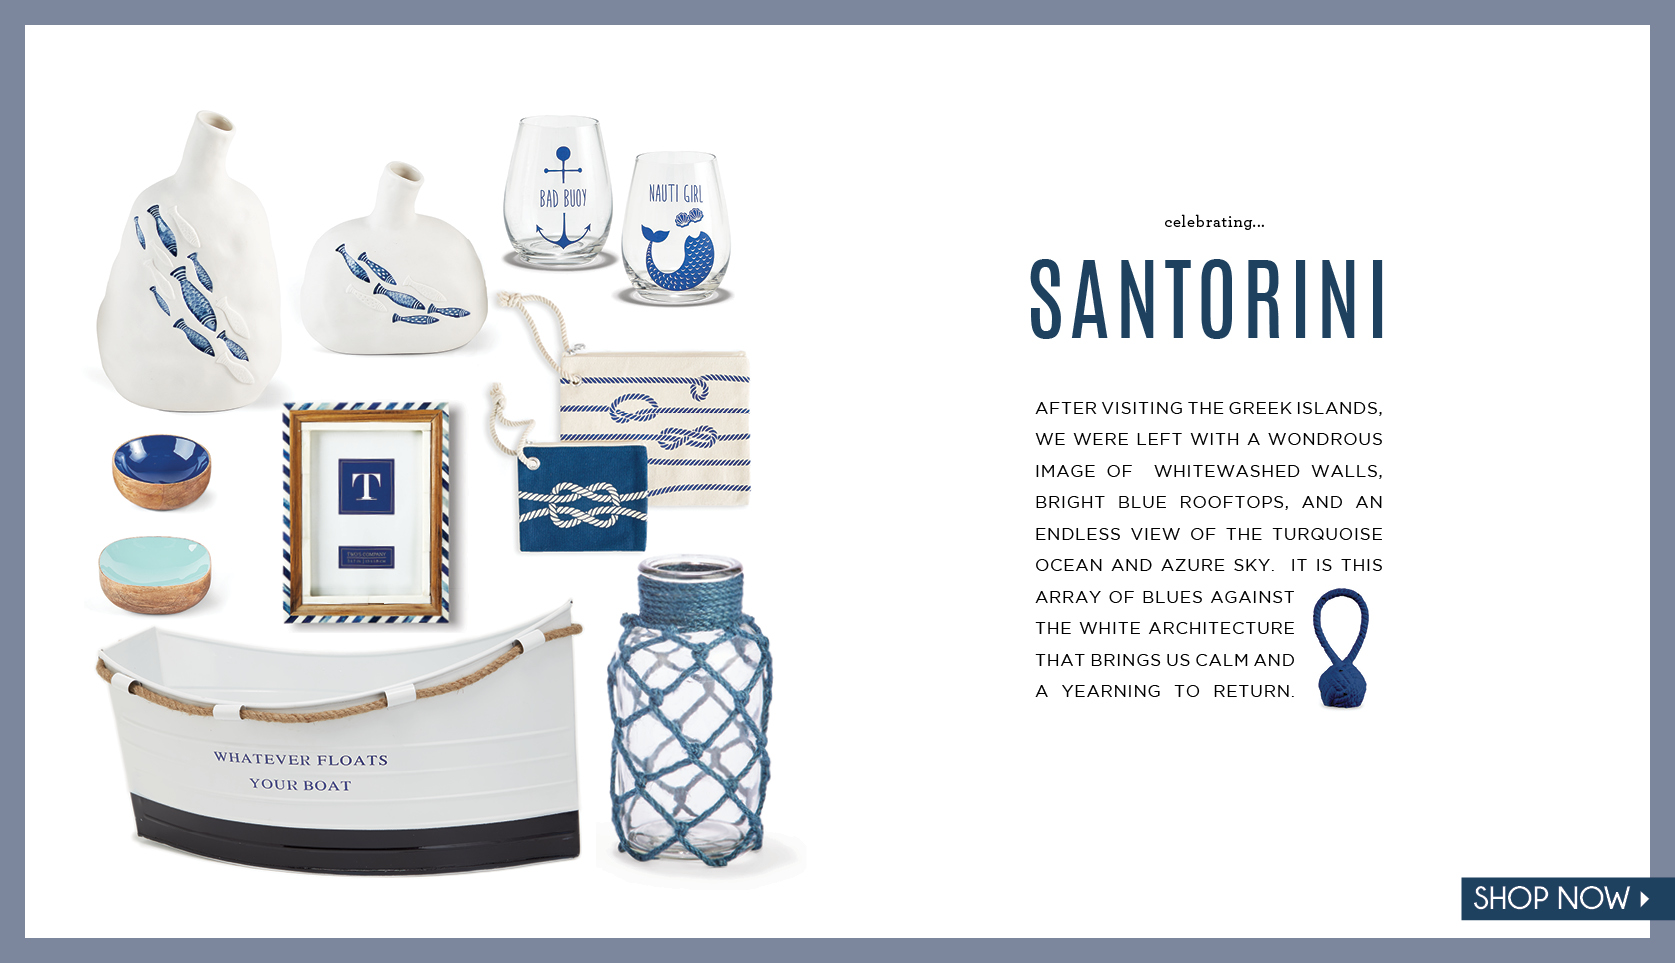 Santorini Collection image